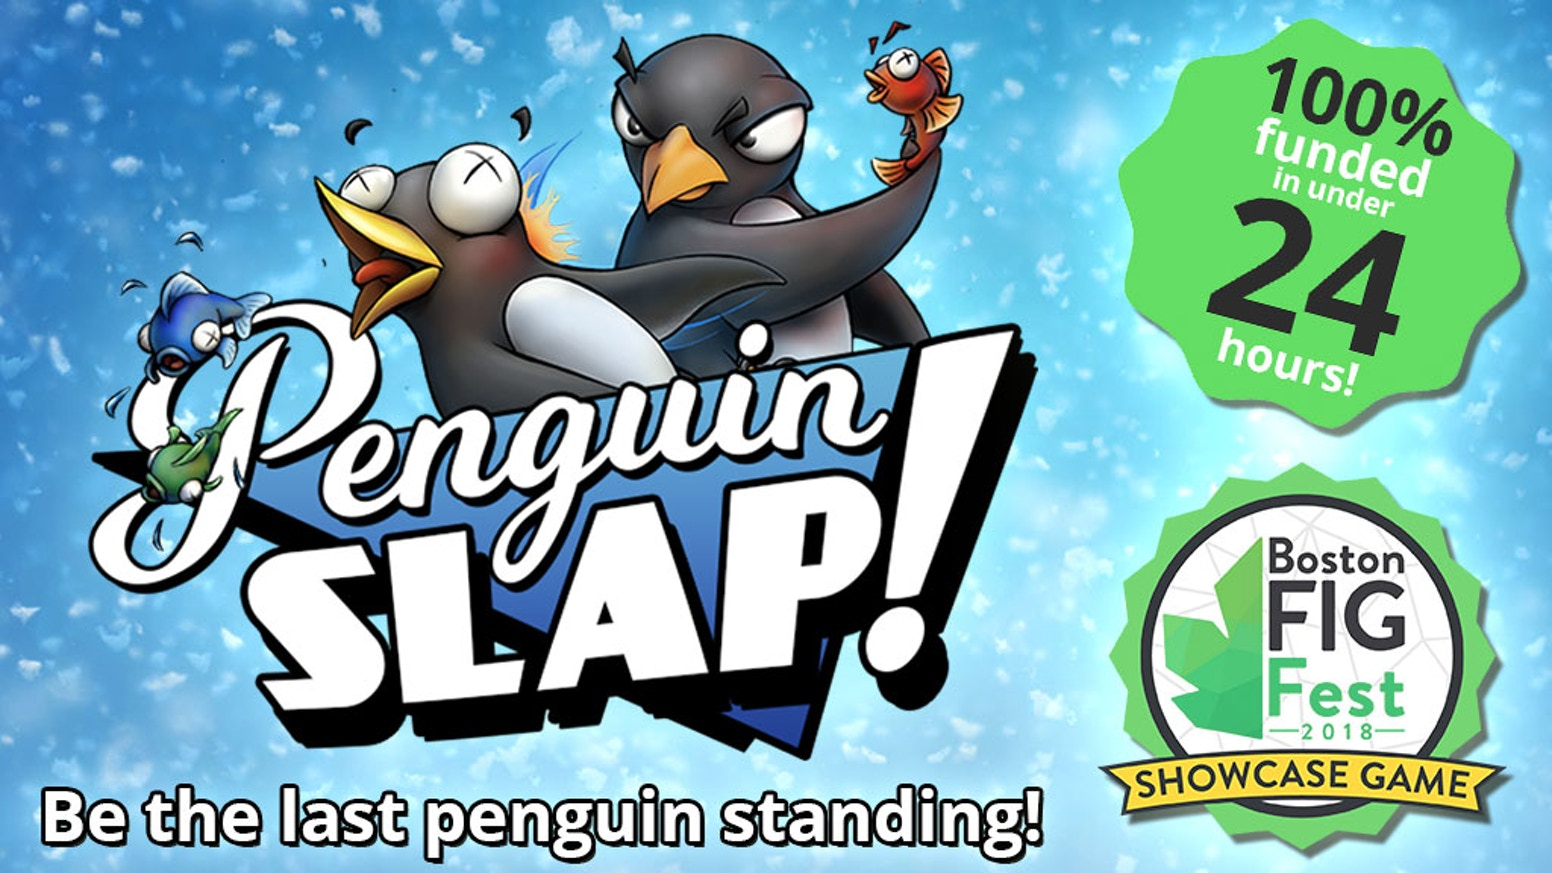 A last-penguin-standing card game for 2-4 players.